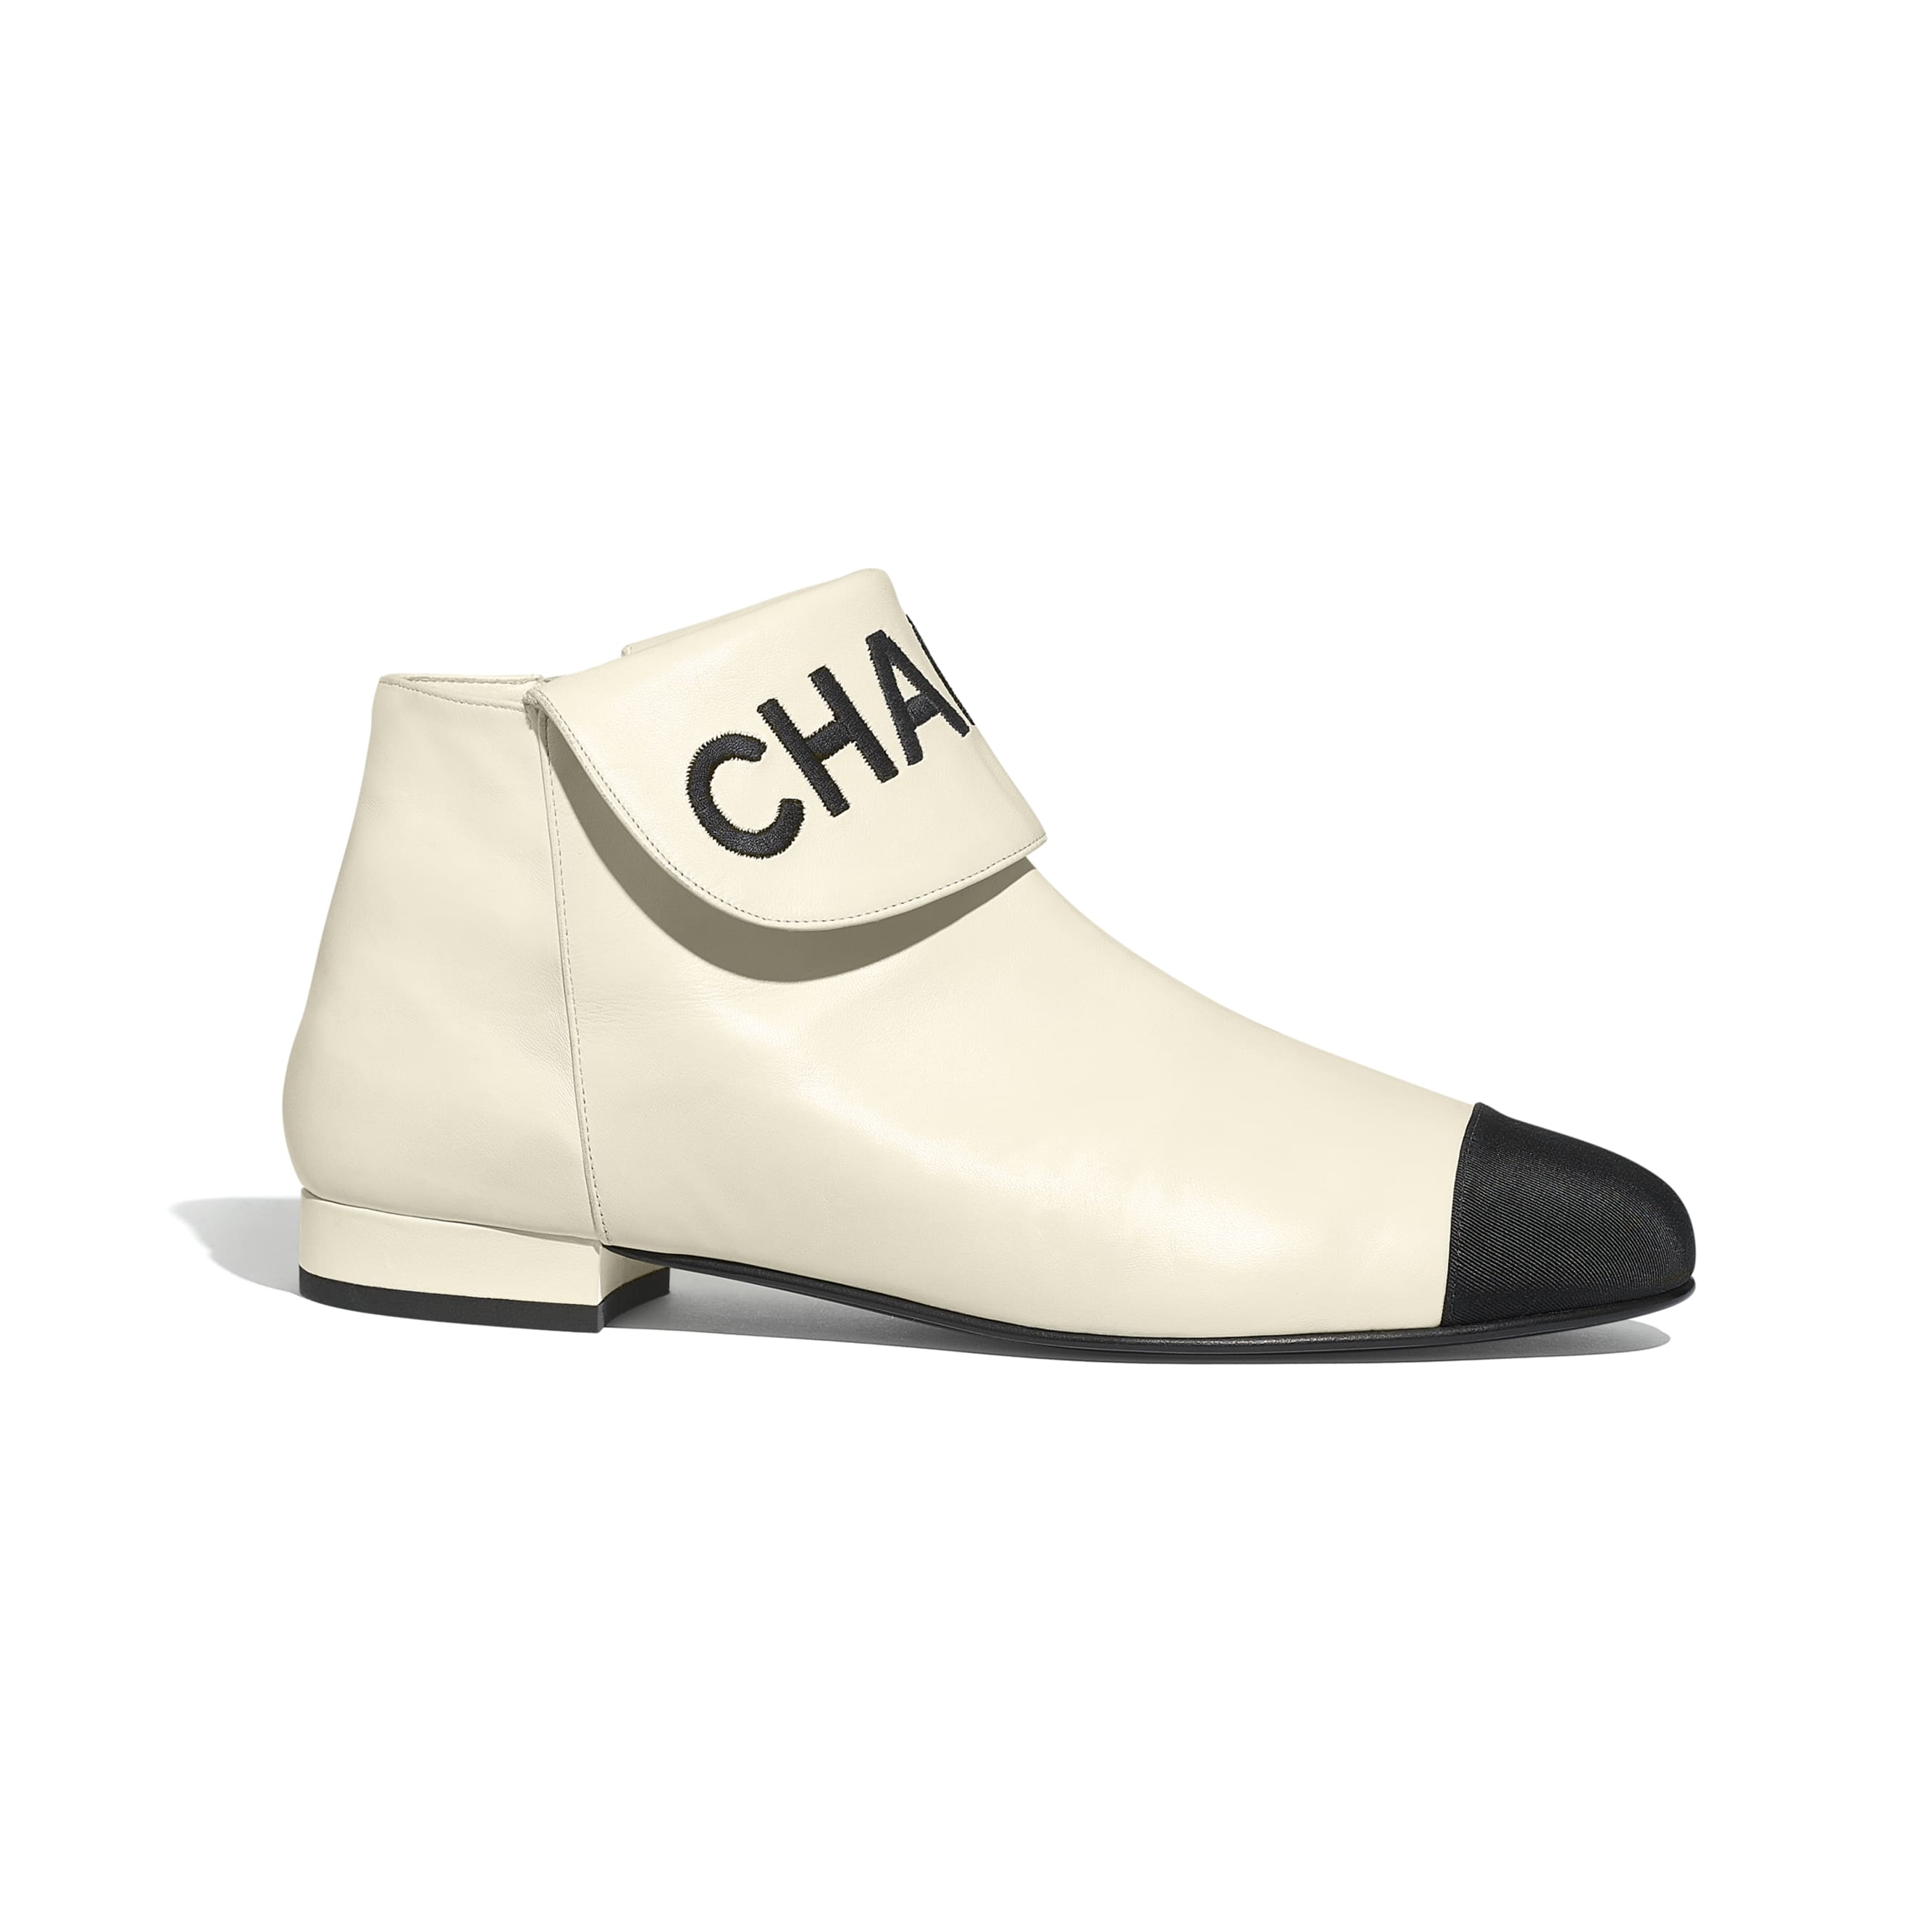 Ankle Boots - Ivory & Black - Lambskin & Grosgrain - Default view - see standard sized version